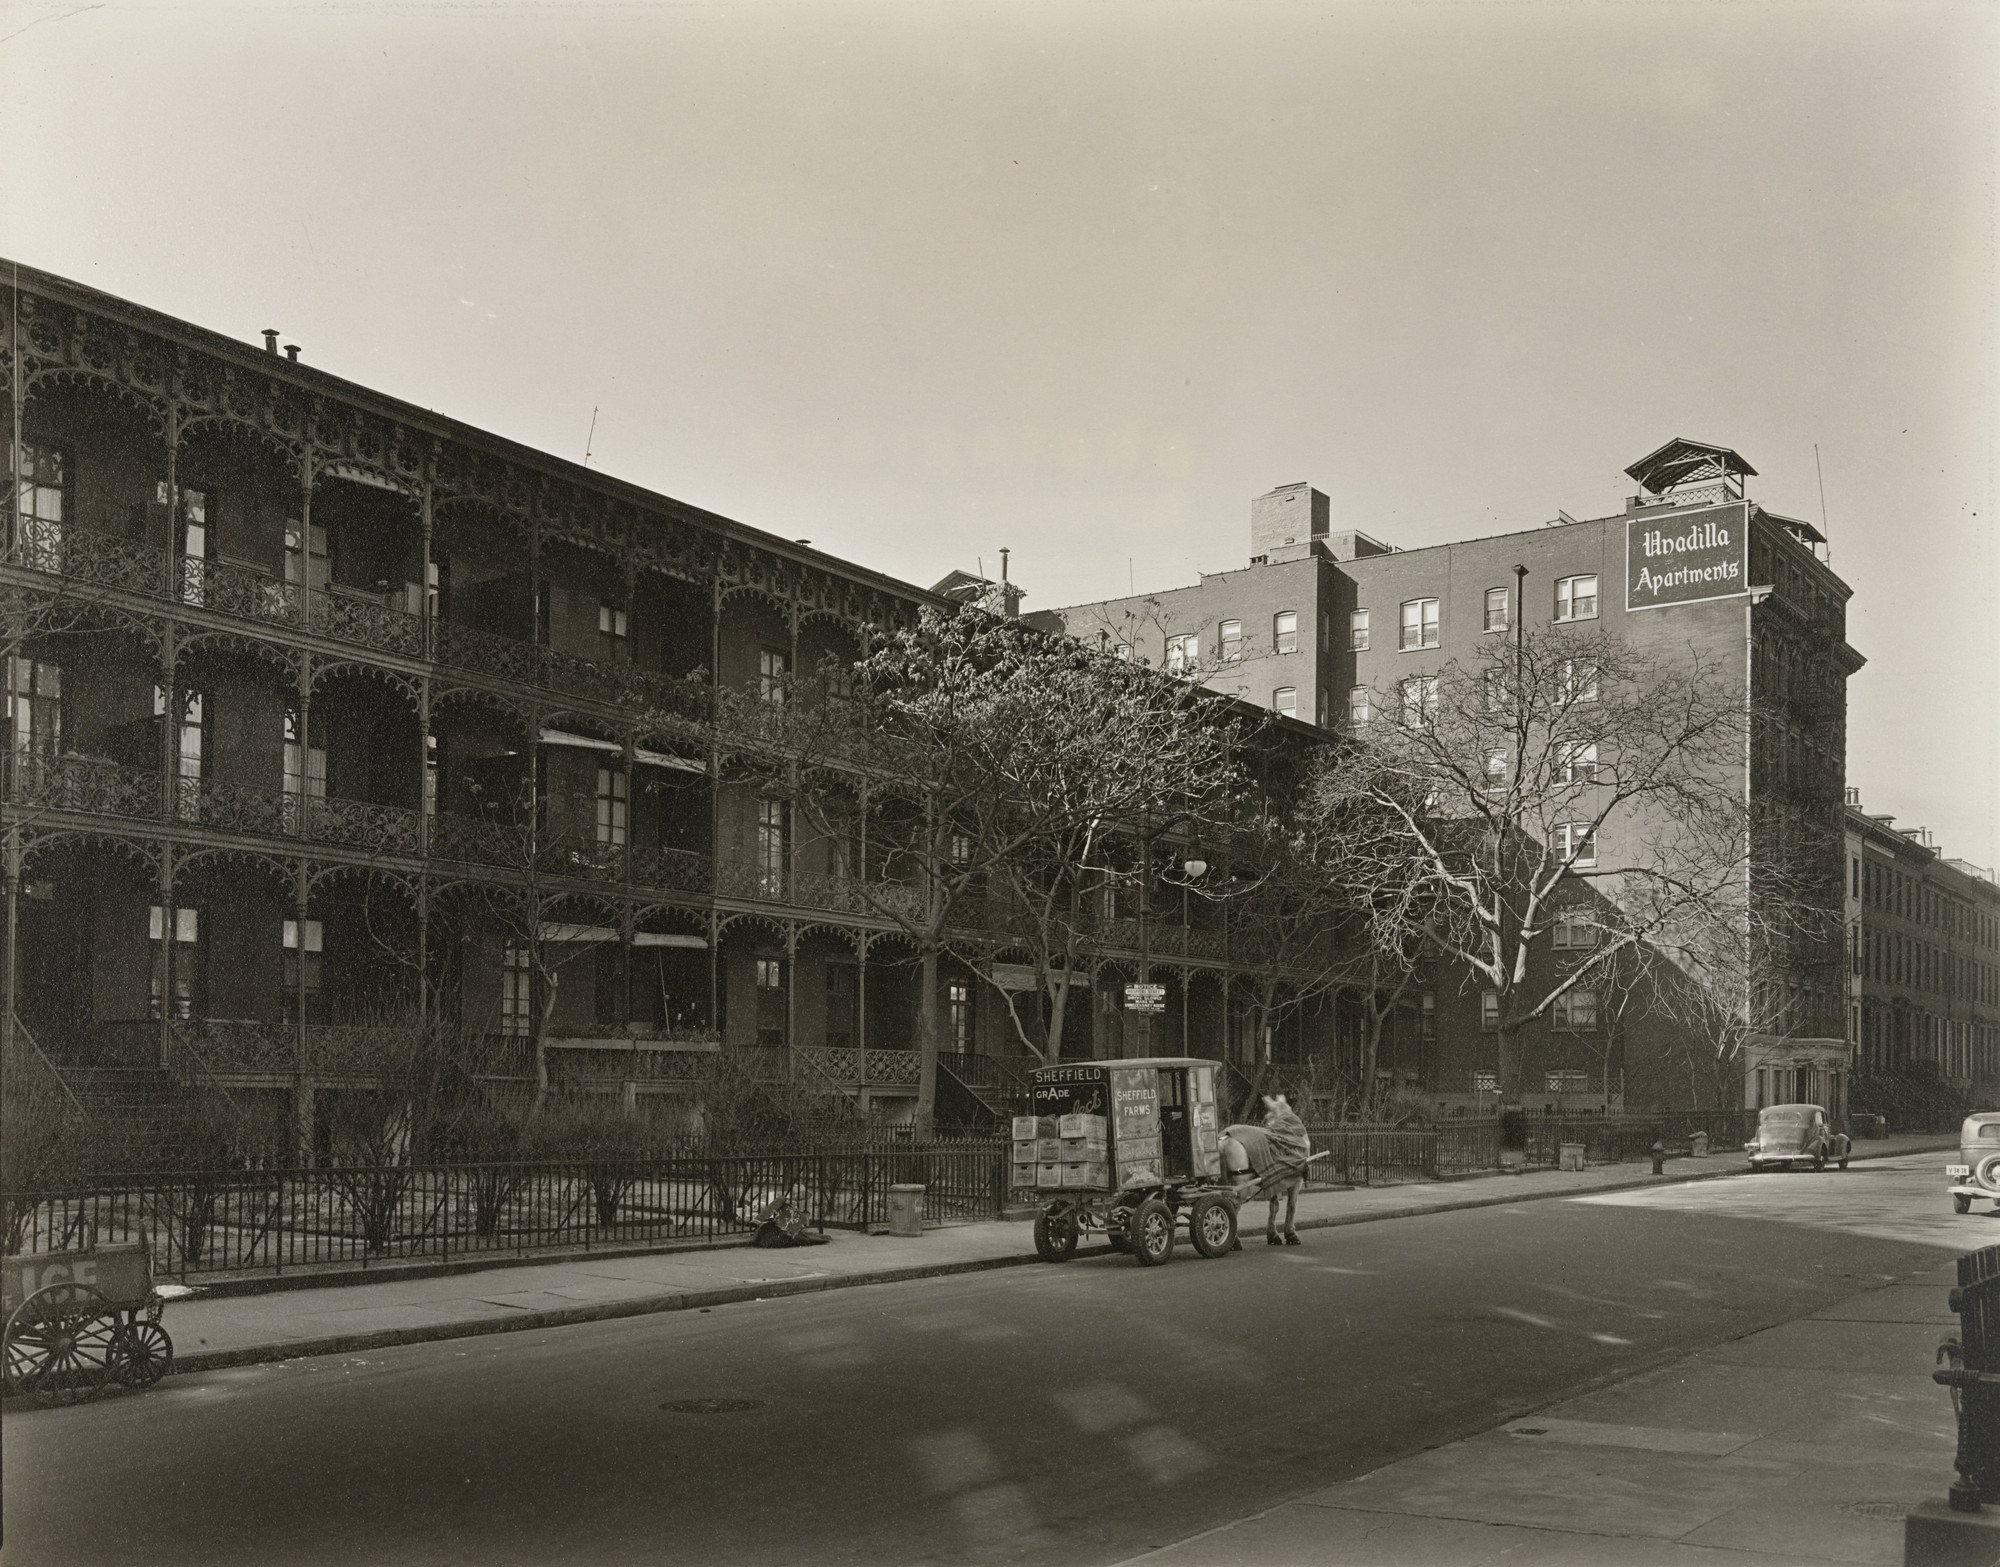 Berenice Abbott. Three-Decker Houses, West 11th Street between Sixth and Seventh Avenues, Manhattan. February 3, 1937